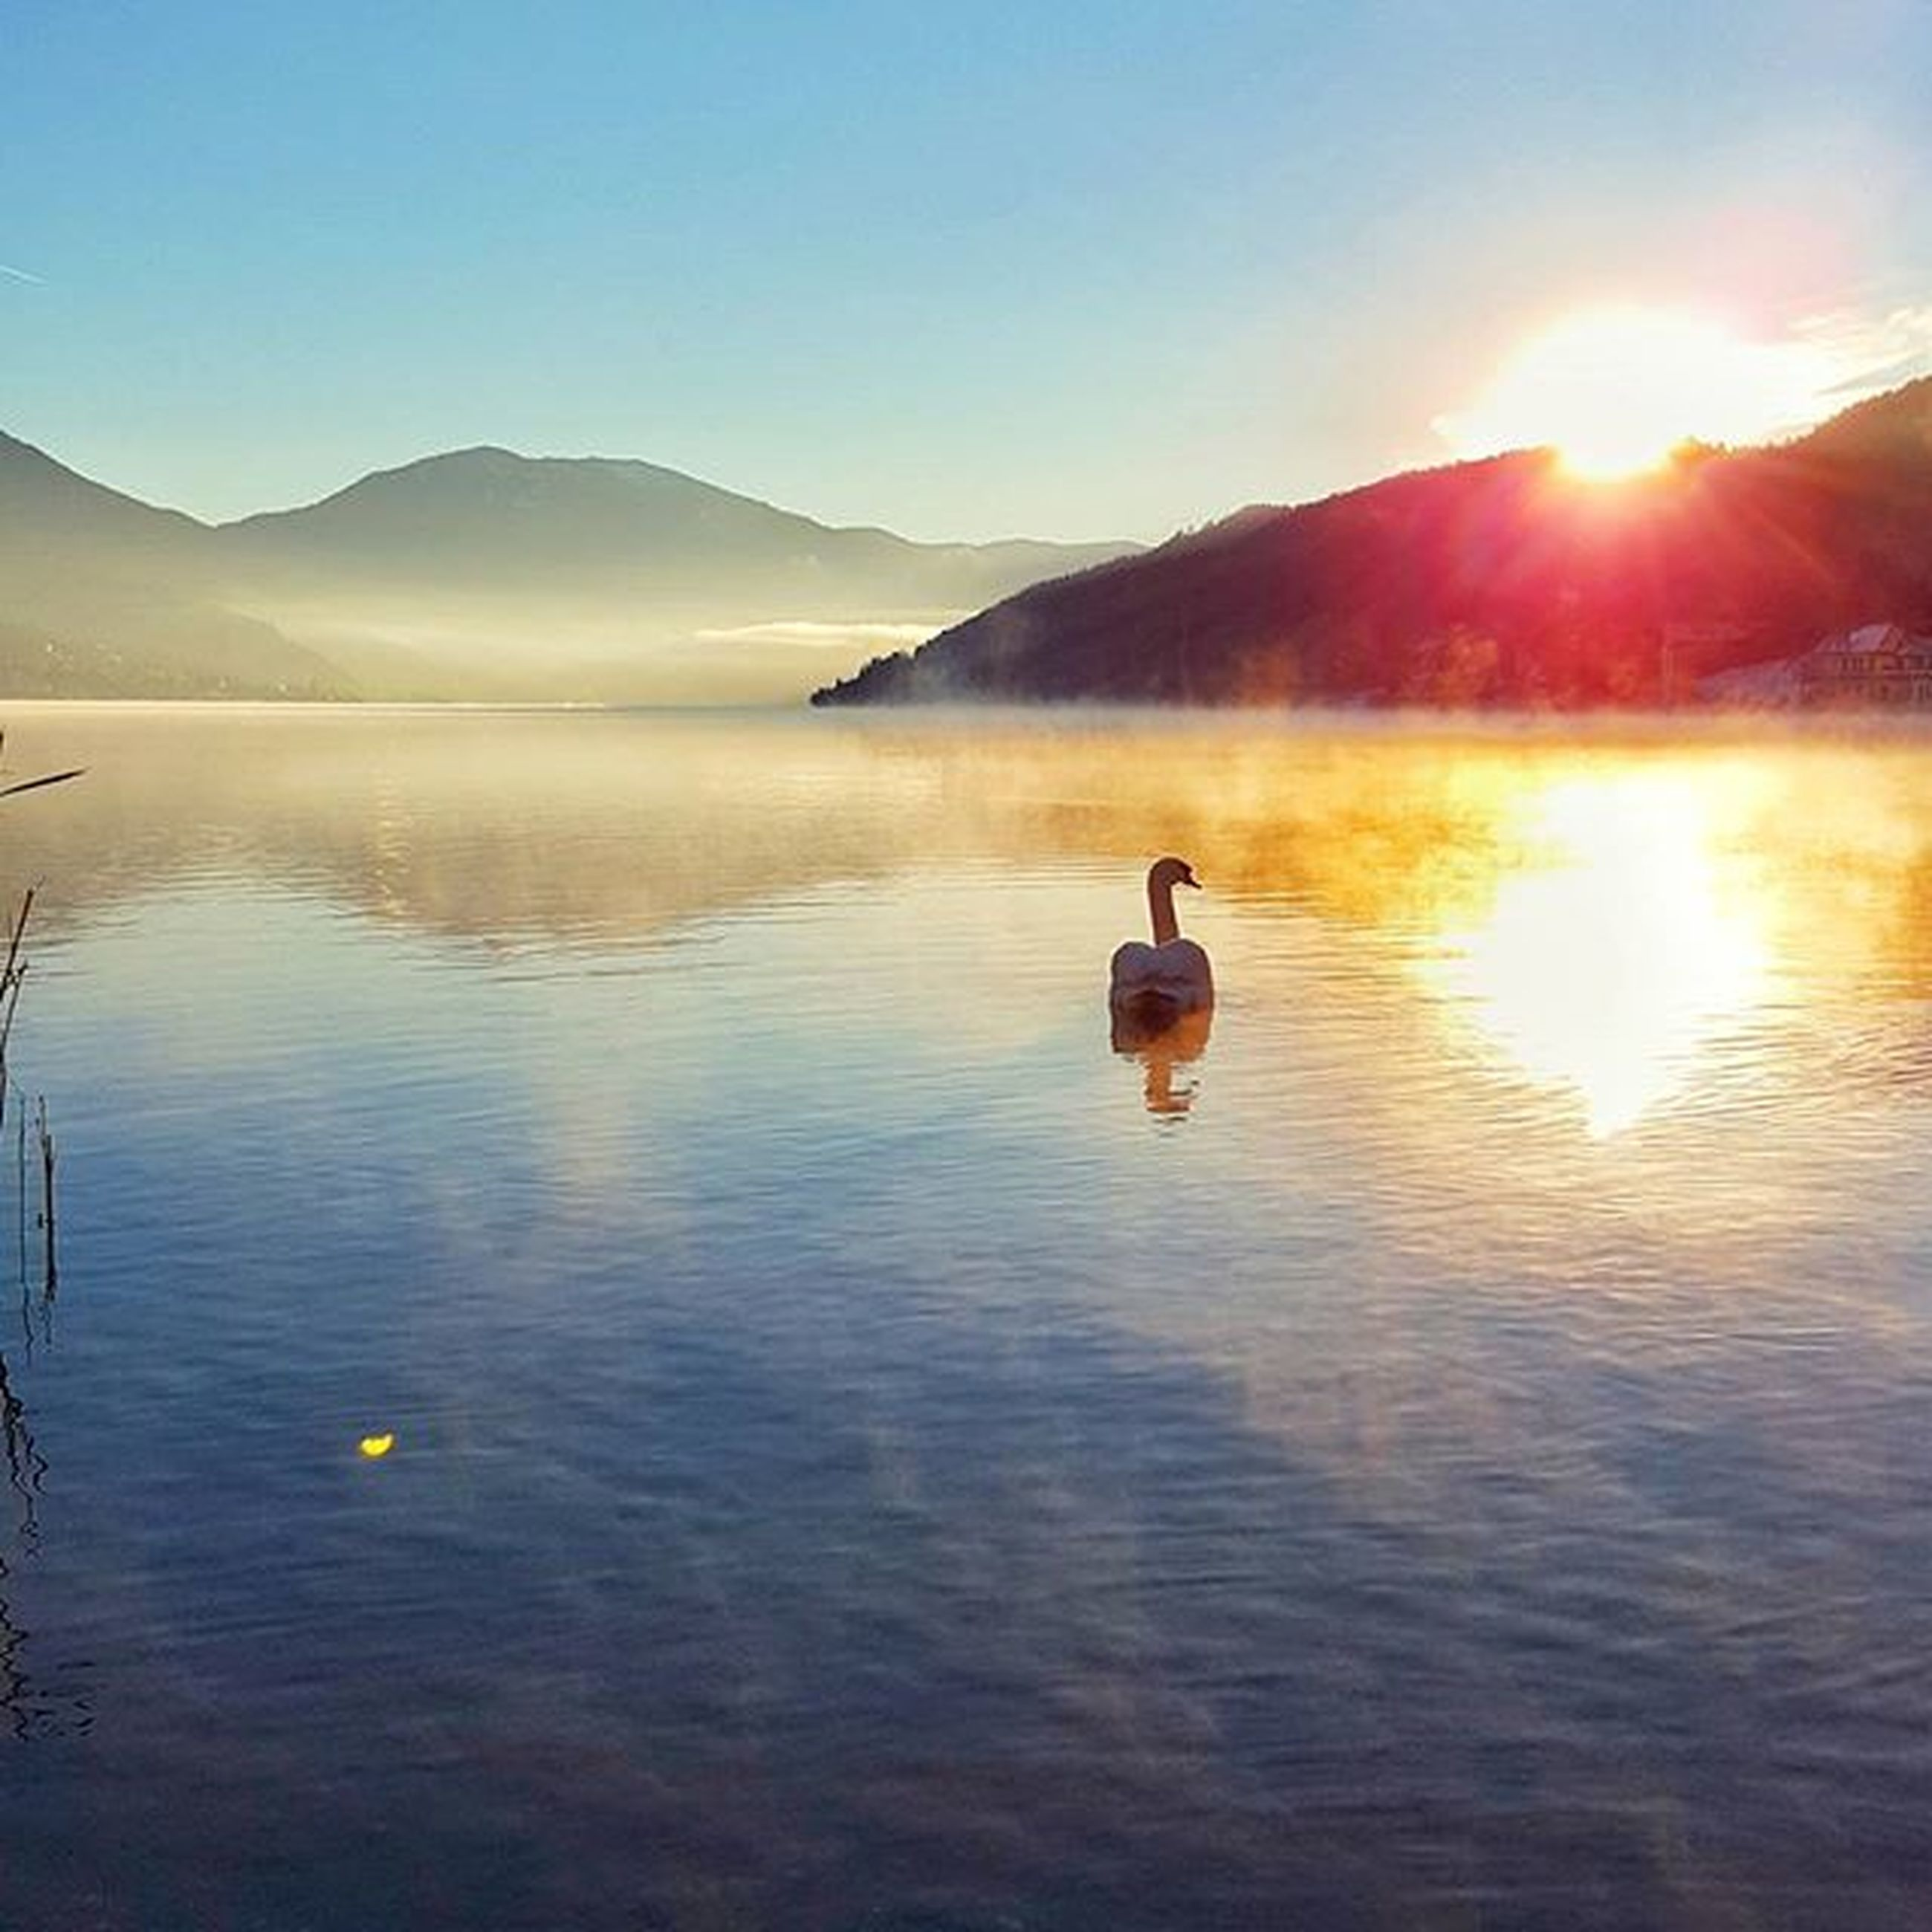 water, mountain, sun, reflection, beauty in nature, lake, sunset, tranquility, scenics, tranquil scene, sunlight, waterfront, leisure activity, lifestyles, nature, mountain range, sky, clear sky